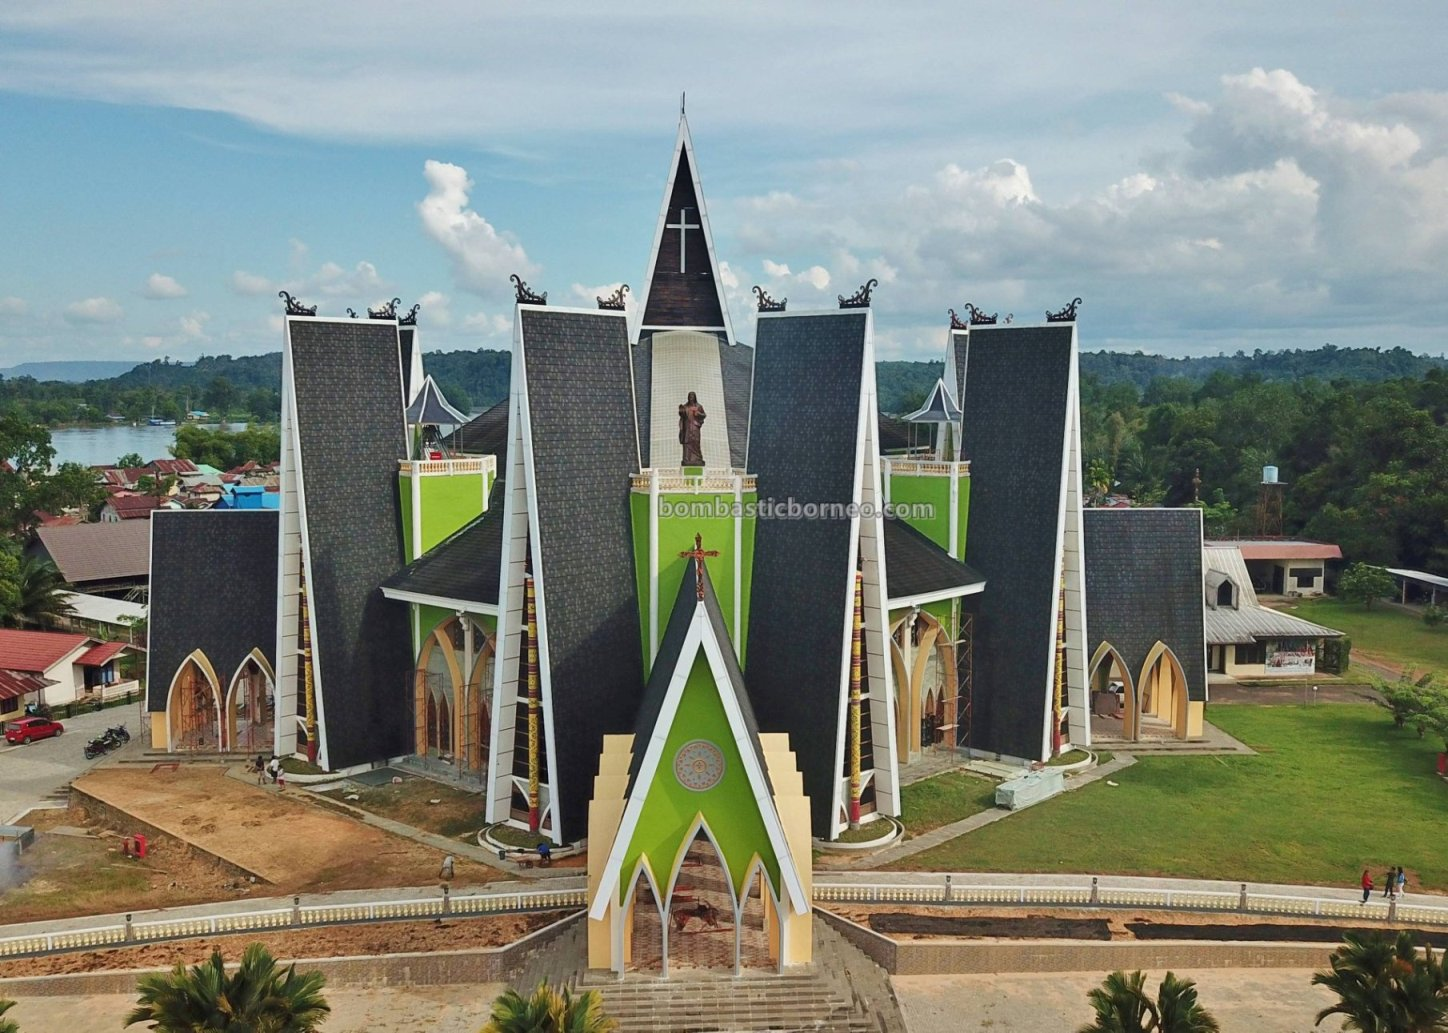 cathedral, Gereja Katedral Hati Kudus Yesus, backpackers, destination, Indonesia, West Kalimantan, Obyek wisata, Pariwisata, Tourism, tourist attraction, travel guide, Transborneo, 印尼西加里曼丹, 婆罗洲旅游景点